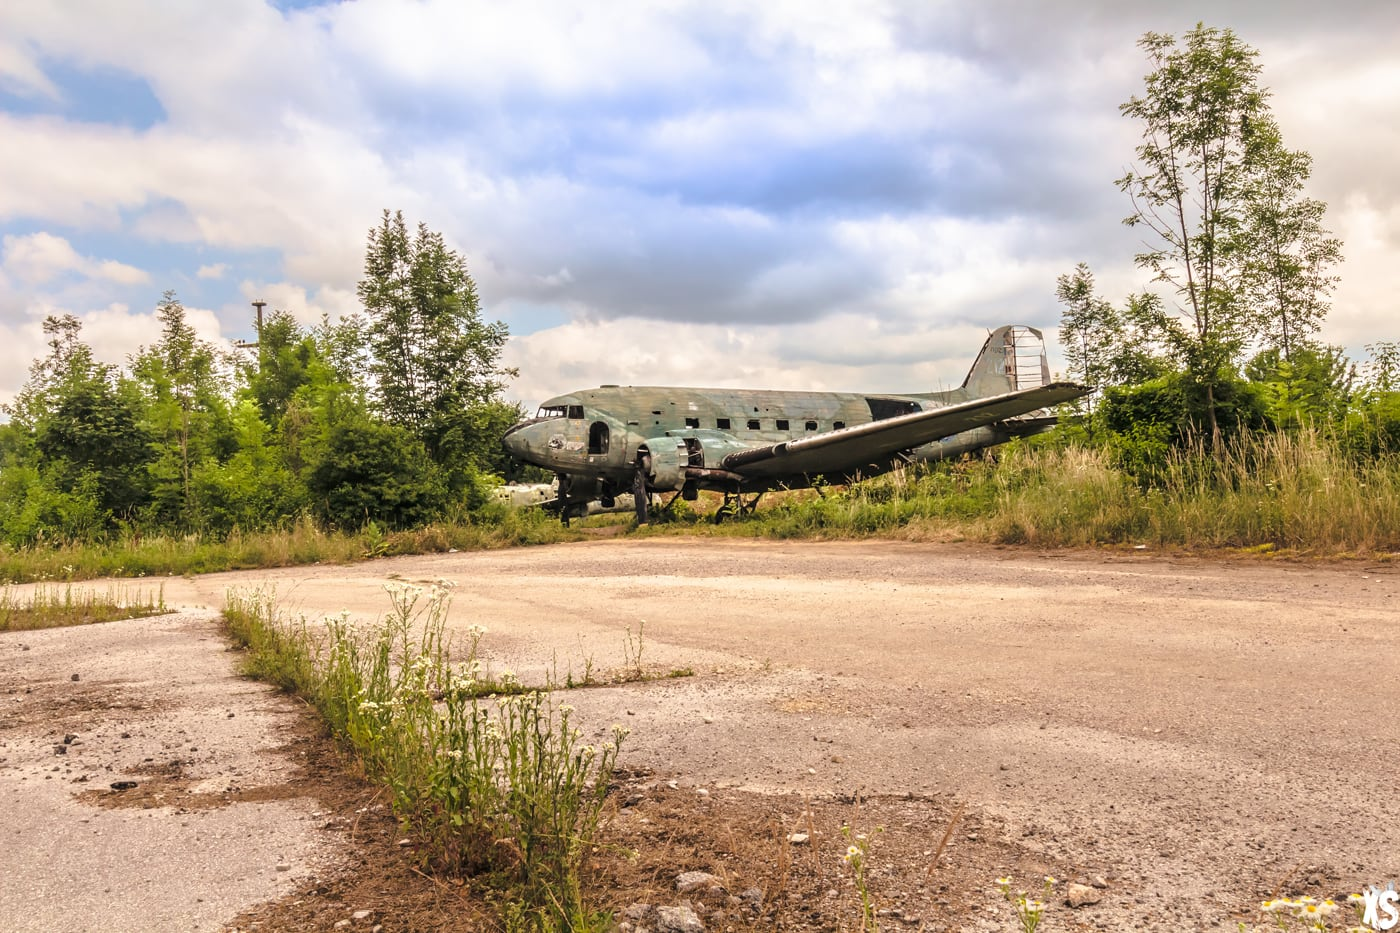 Airplane Graveyard - Abandoned Airplanes - Urbex